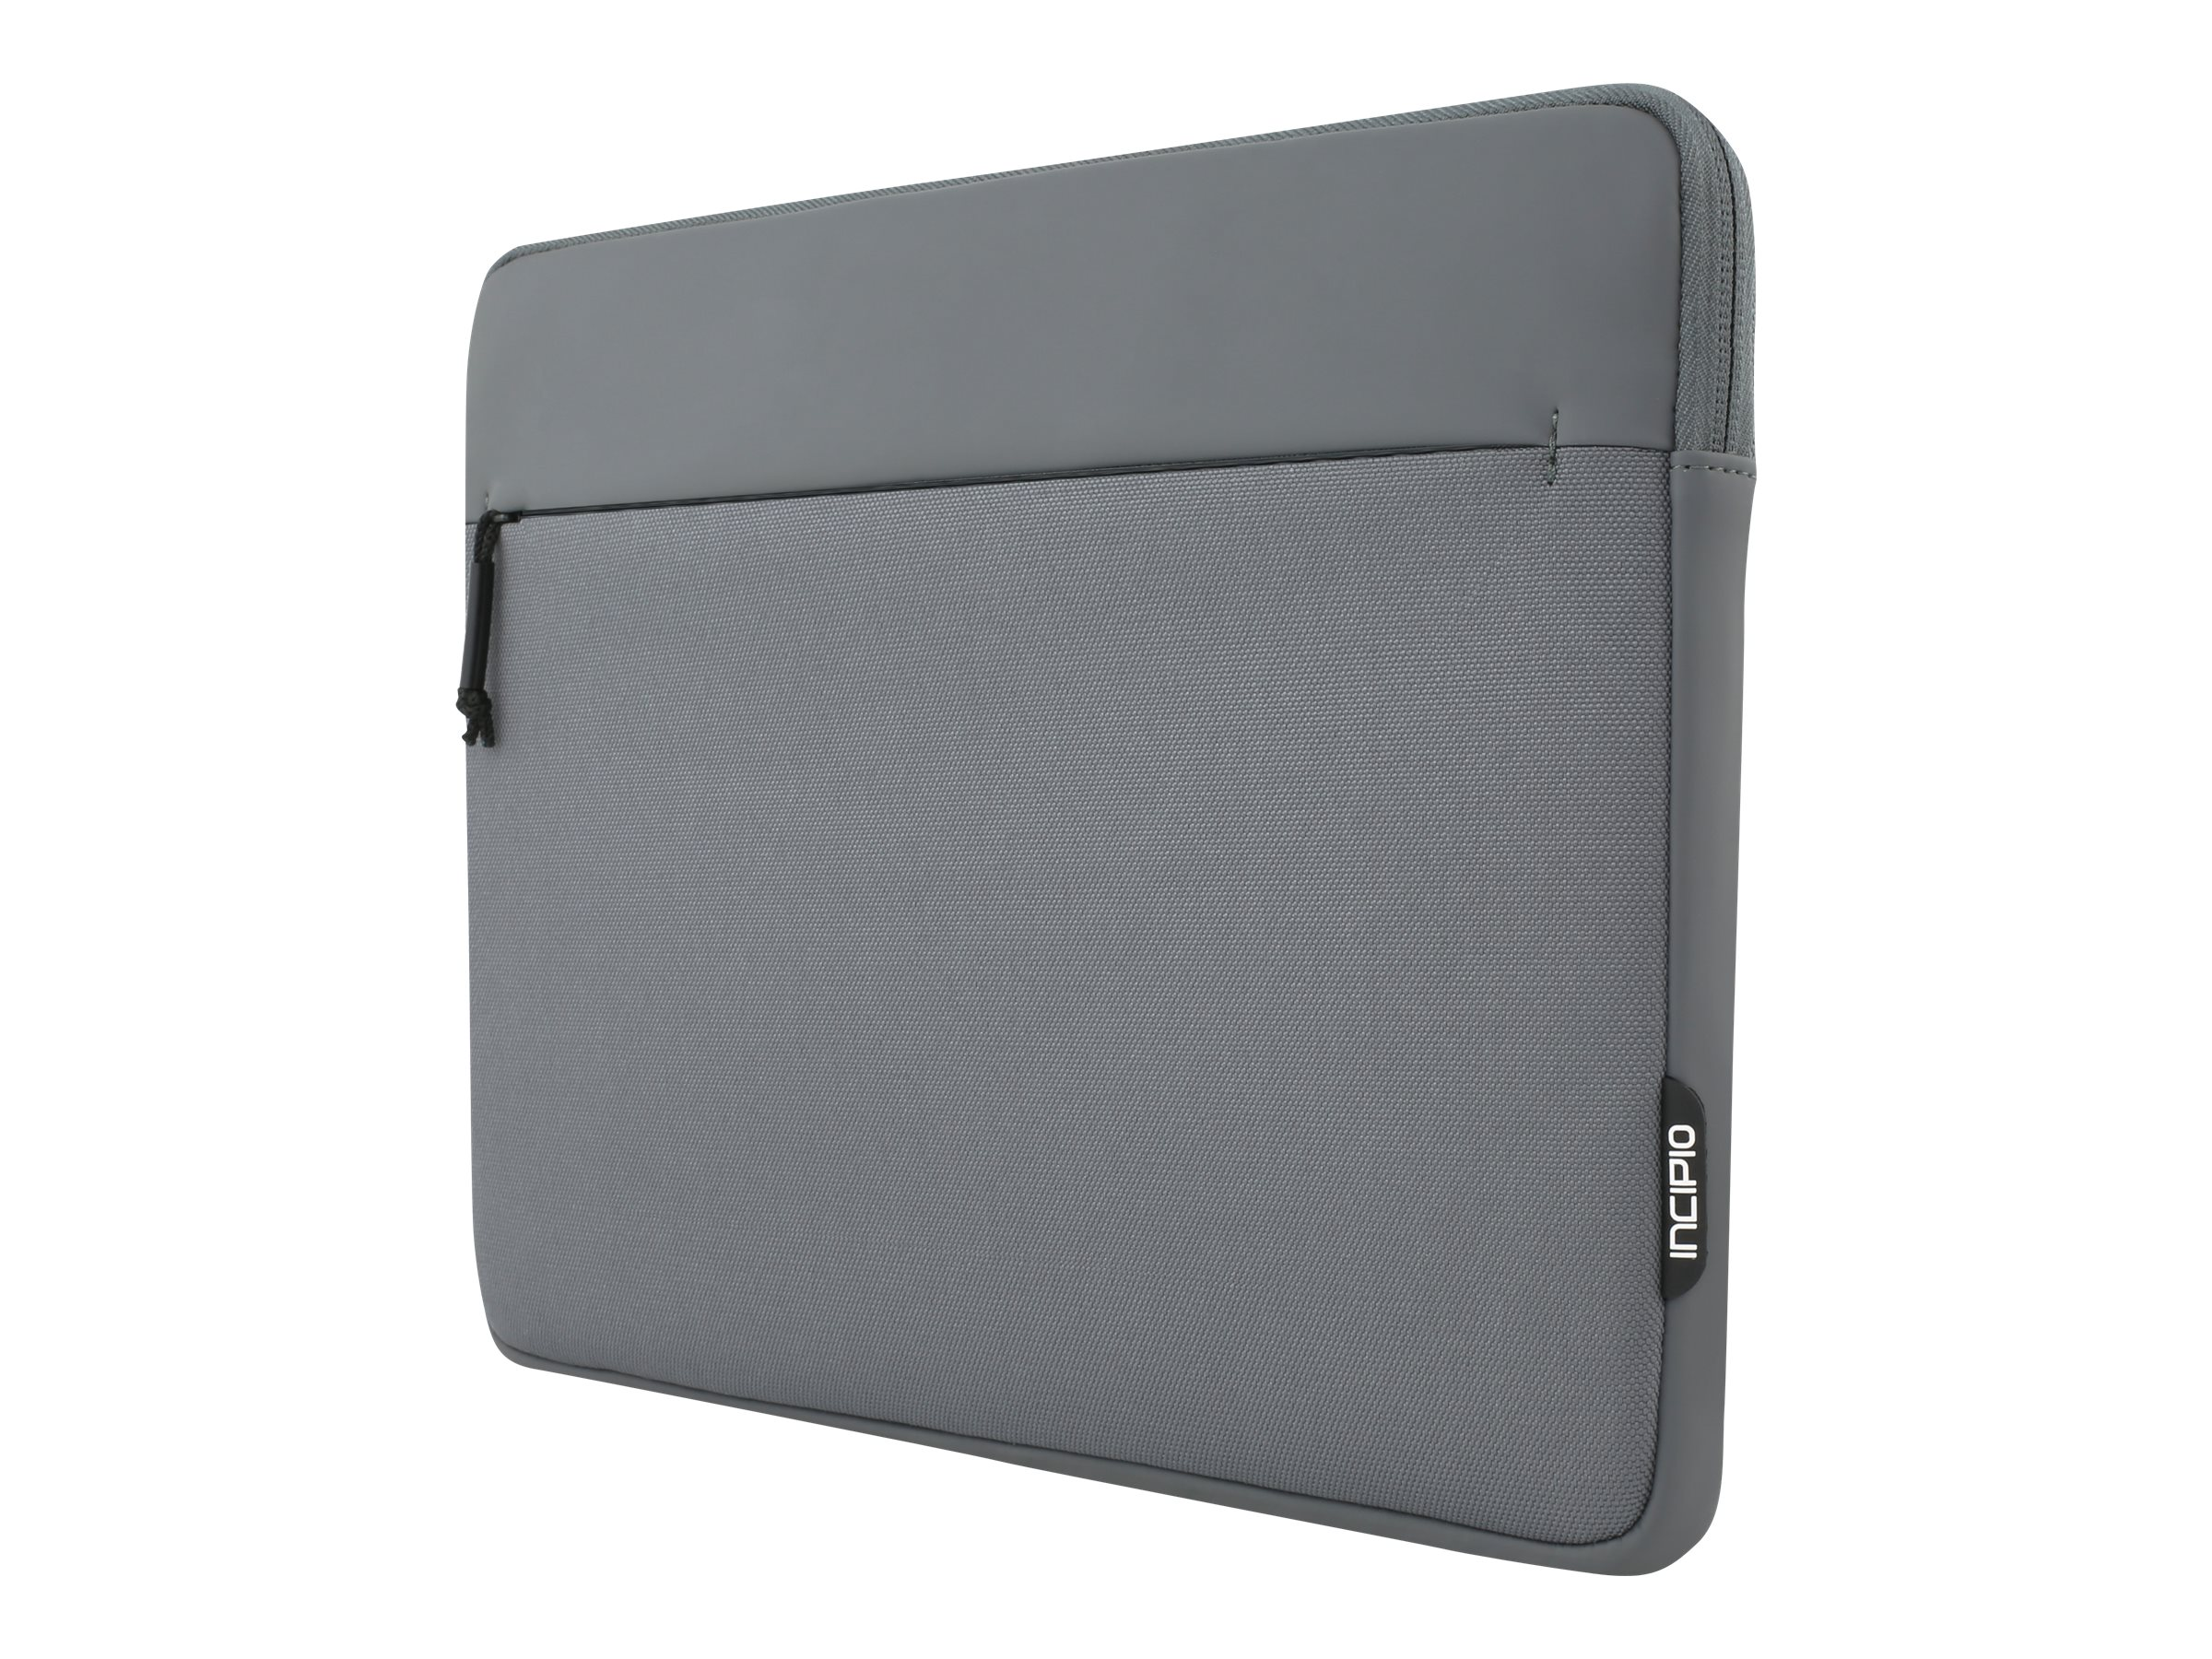 Incipio Truman Protective Padded Sleeve for iPad Pro 12.9, Gray